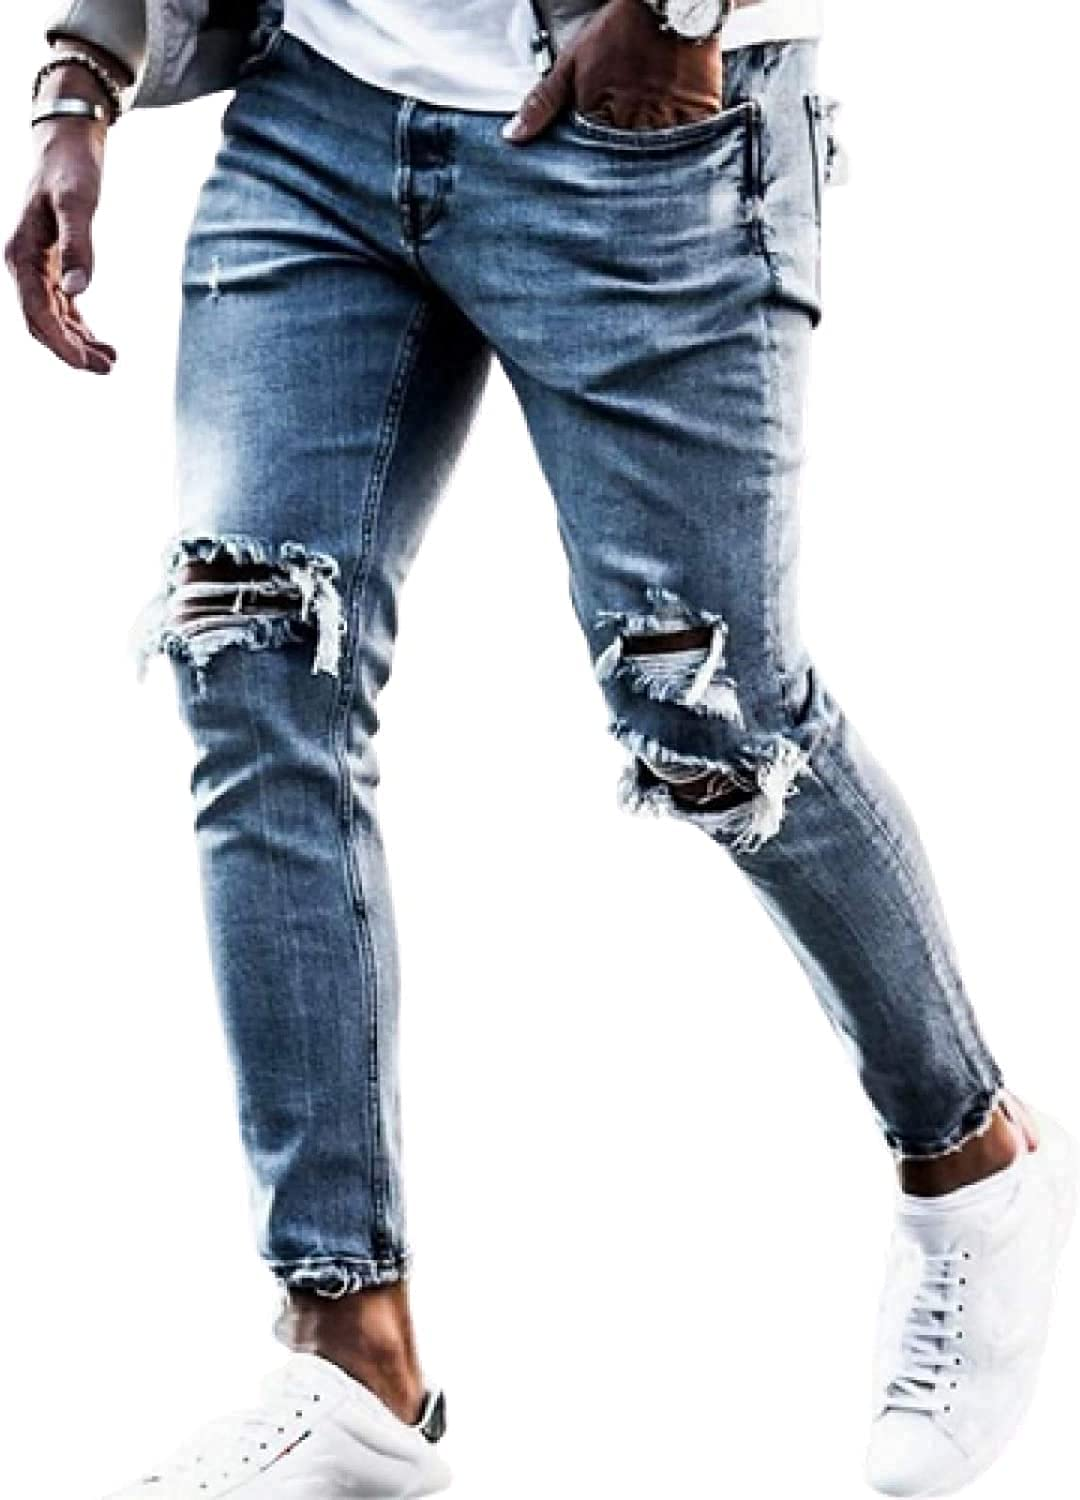 CHENX1NN Mens Denim Trousers Slim Fit Destroyed Skinny Jeans Fashionable Hole-Breaking